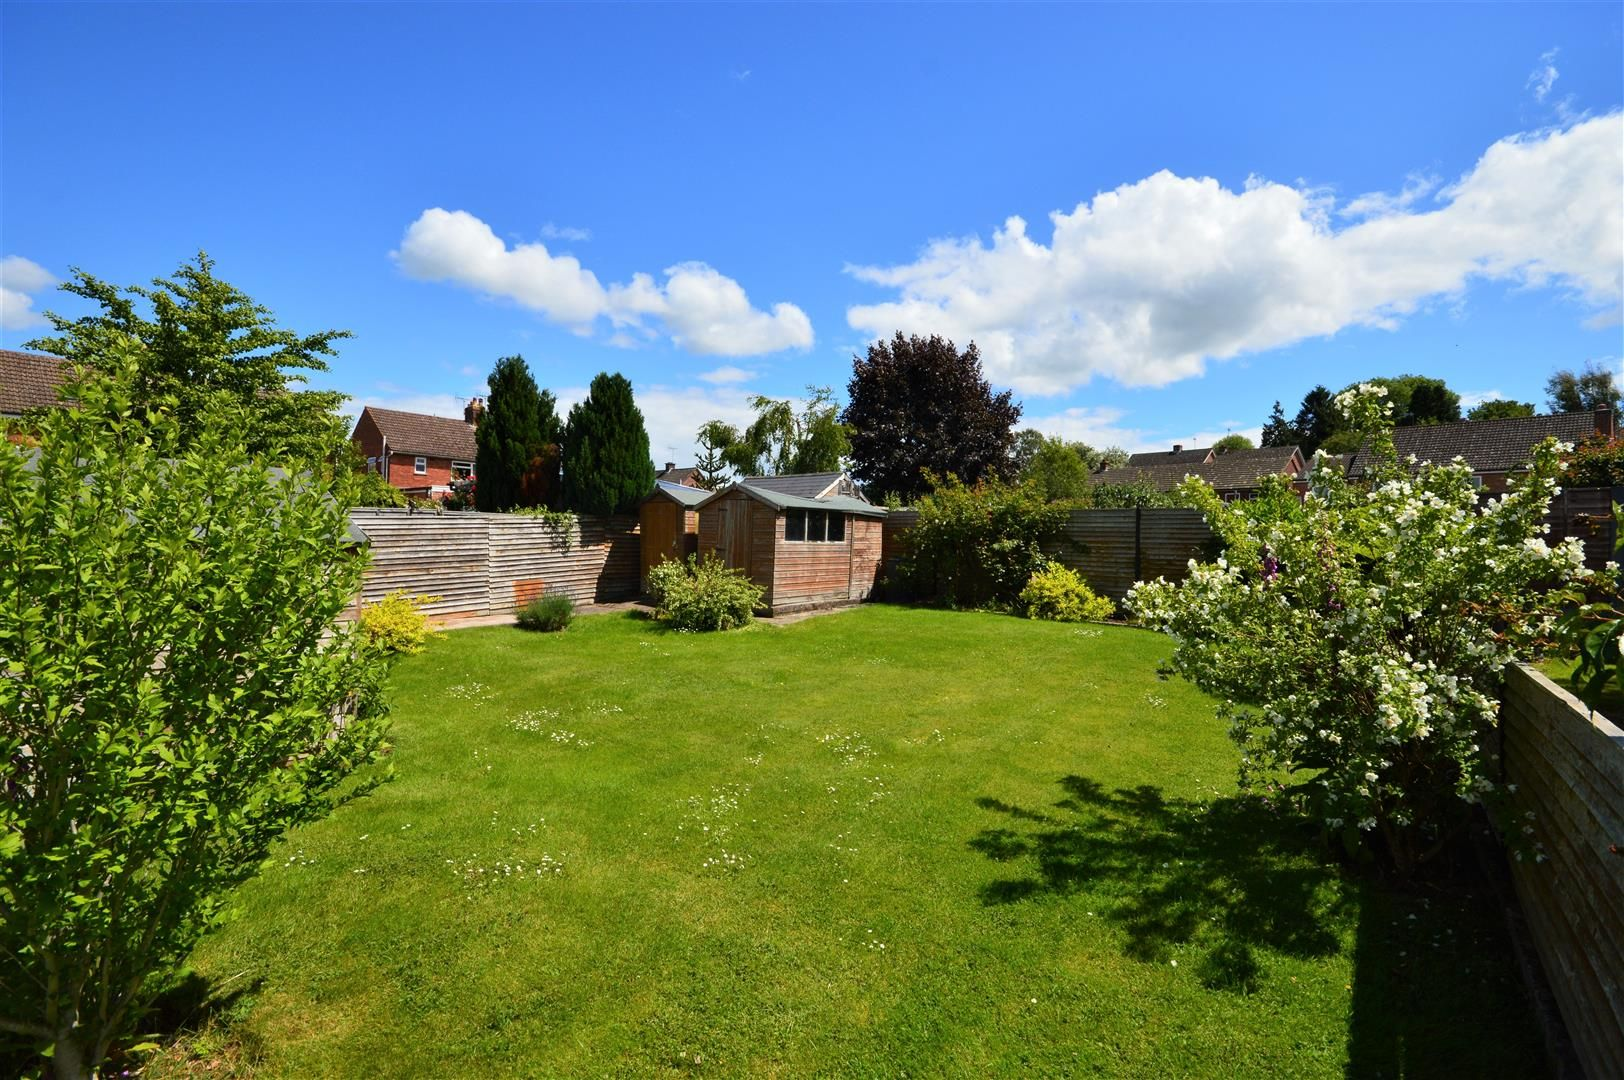 2 bed semi-detached-bungalow for sale in Leominster  - Property Image 10